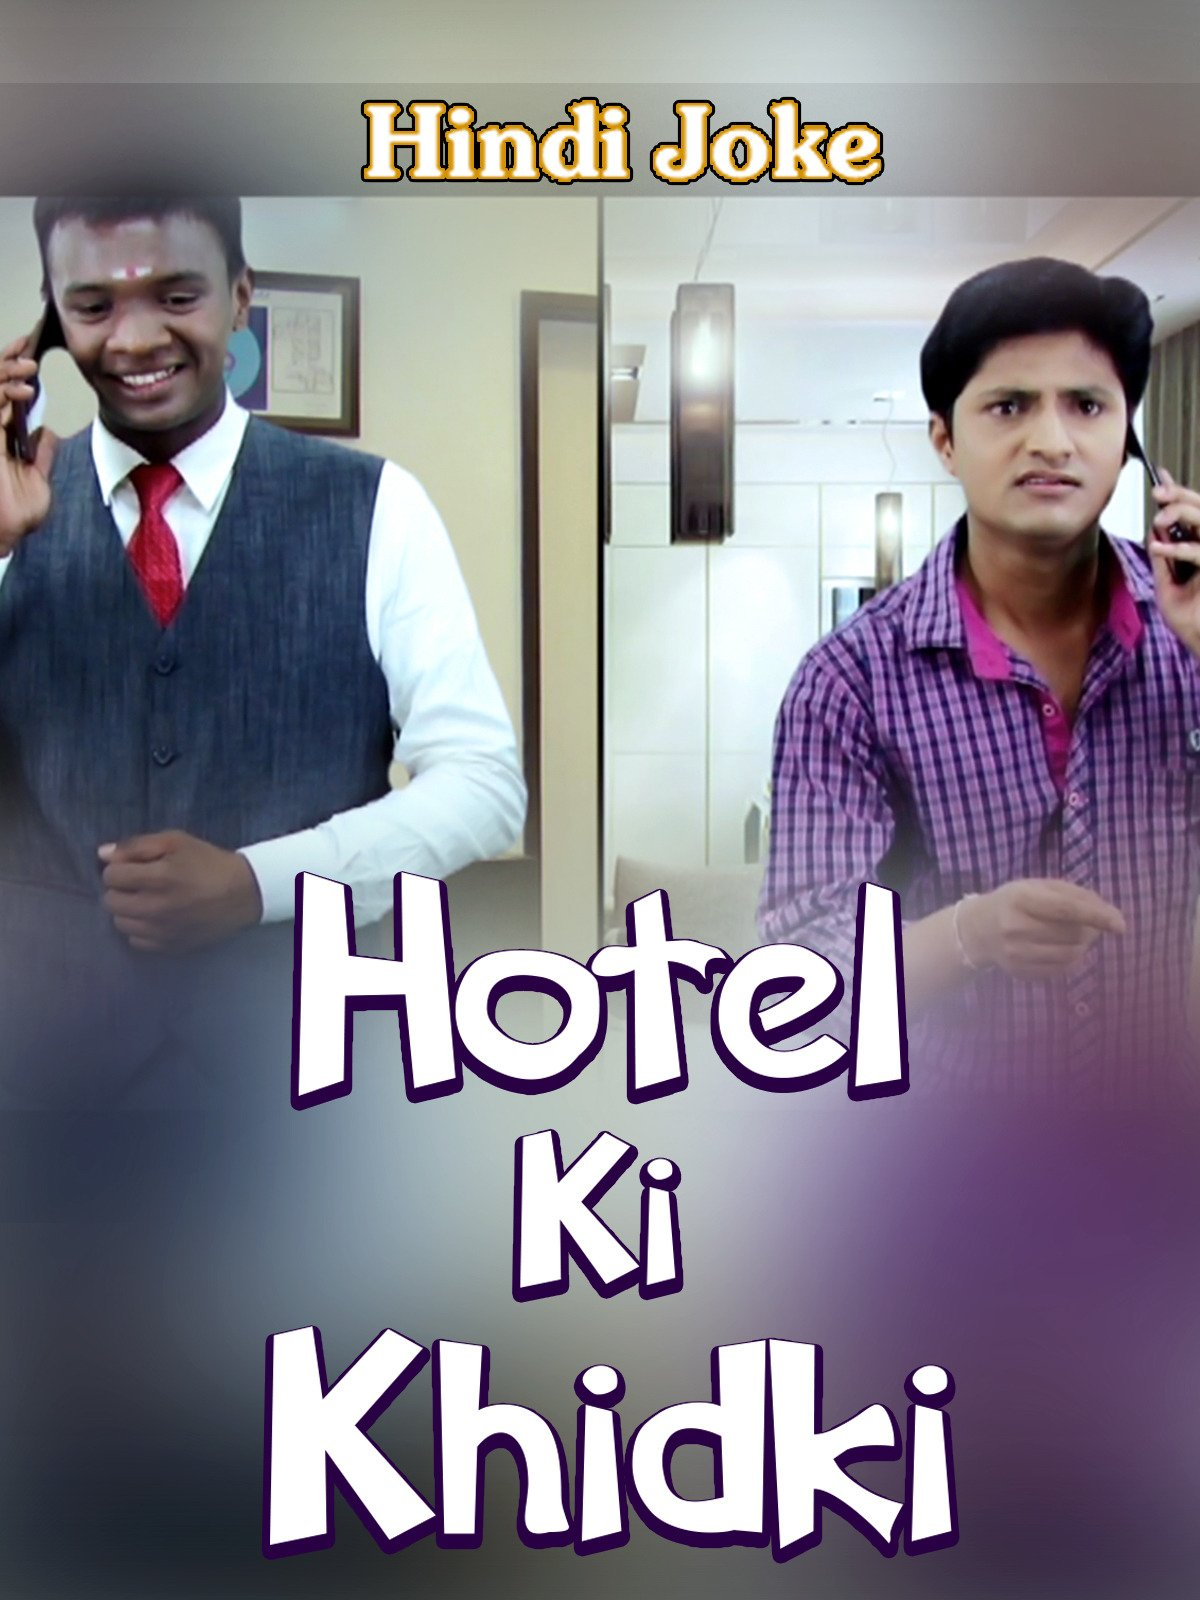 Clip: Hotel Ki Khidki Hindi Joke